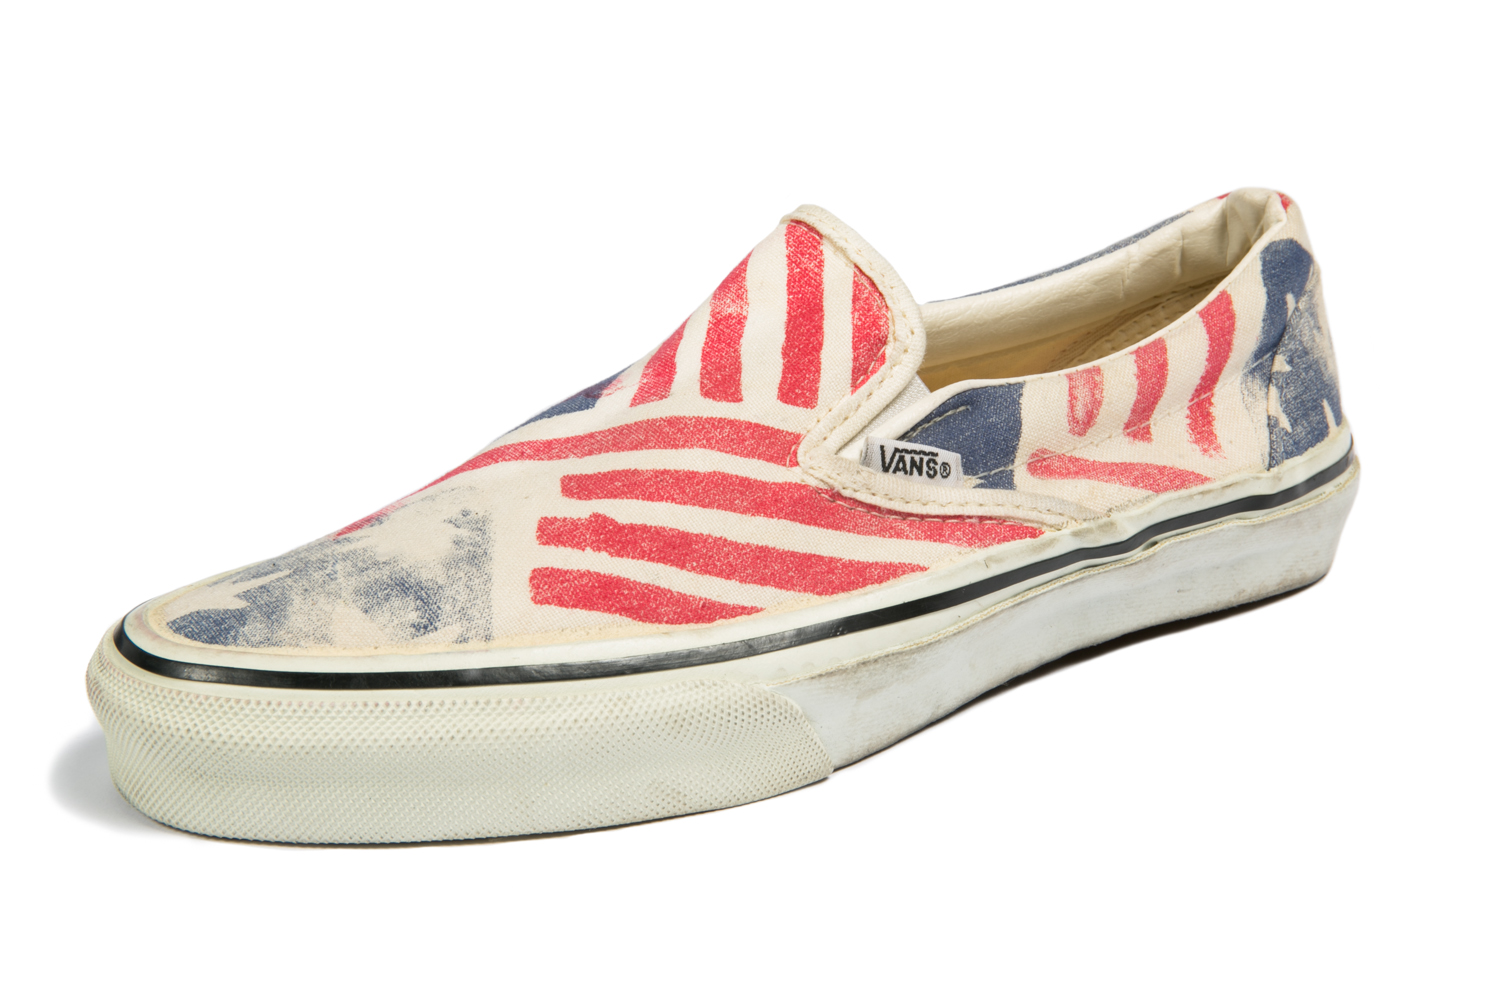 vans at 50 creative review vintage vans shoes the side stripe started out as a doodle by paul van doren who referred to it as a jazz stripe and has since become a hallmark of the